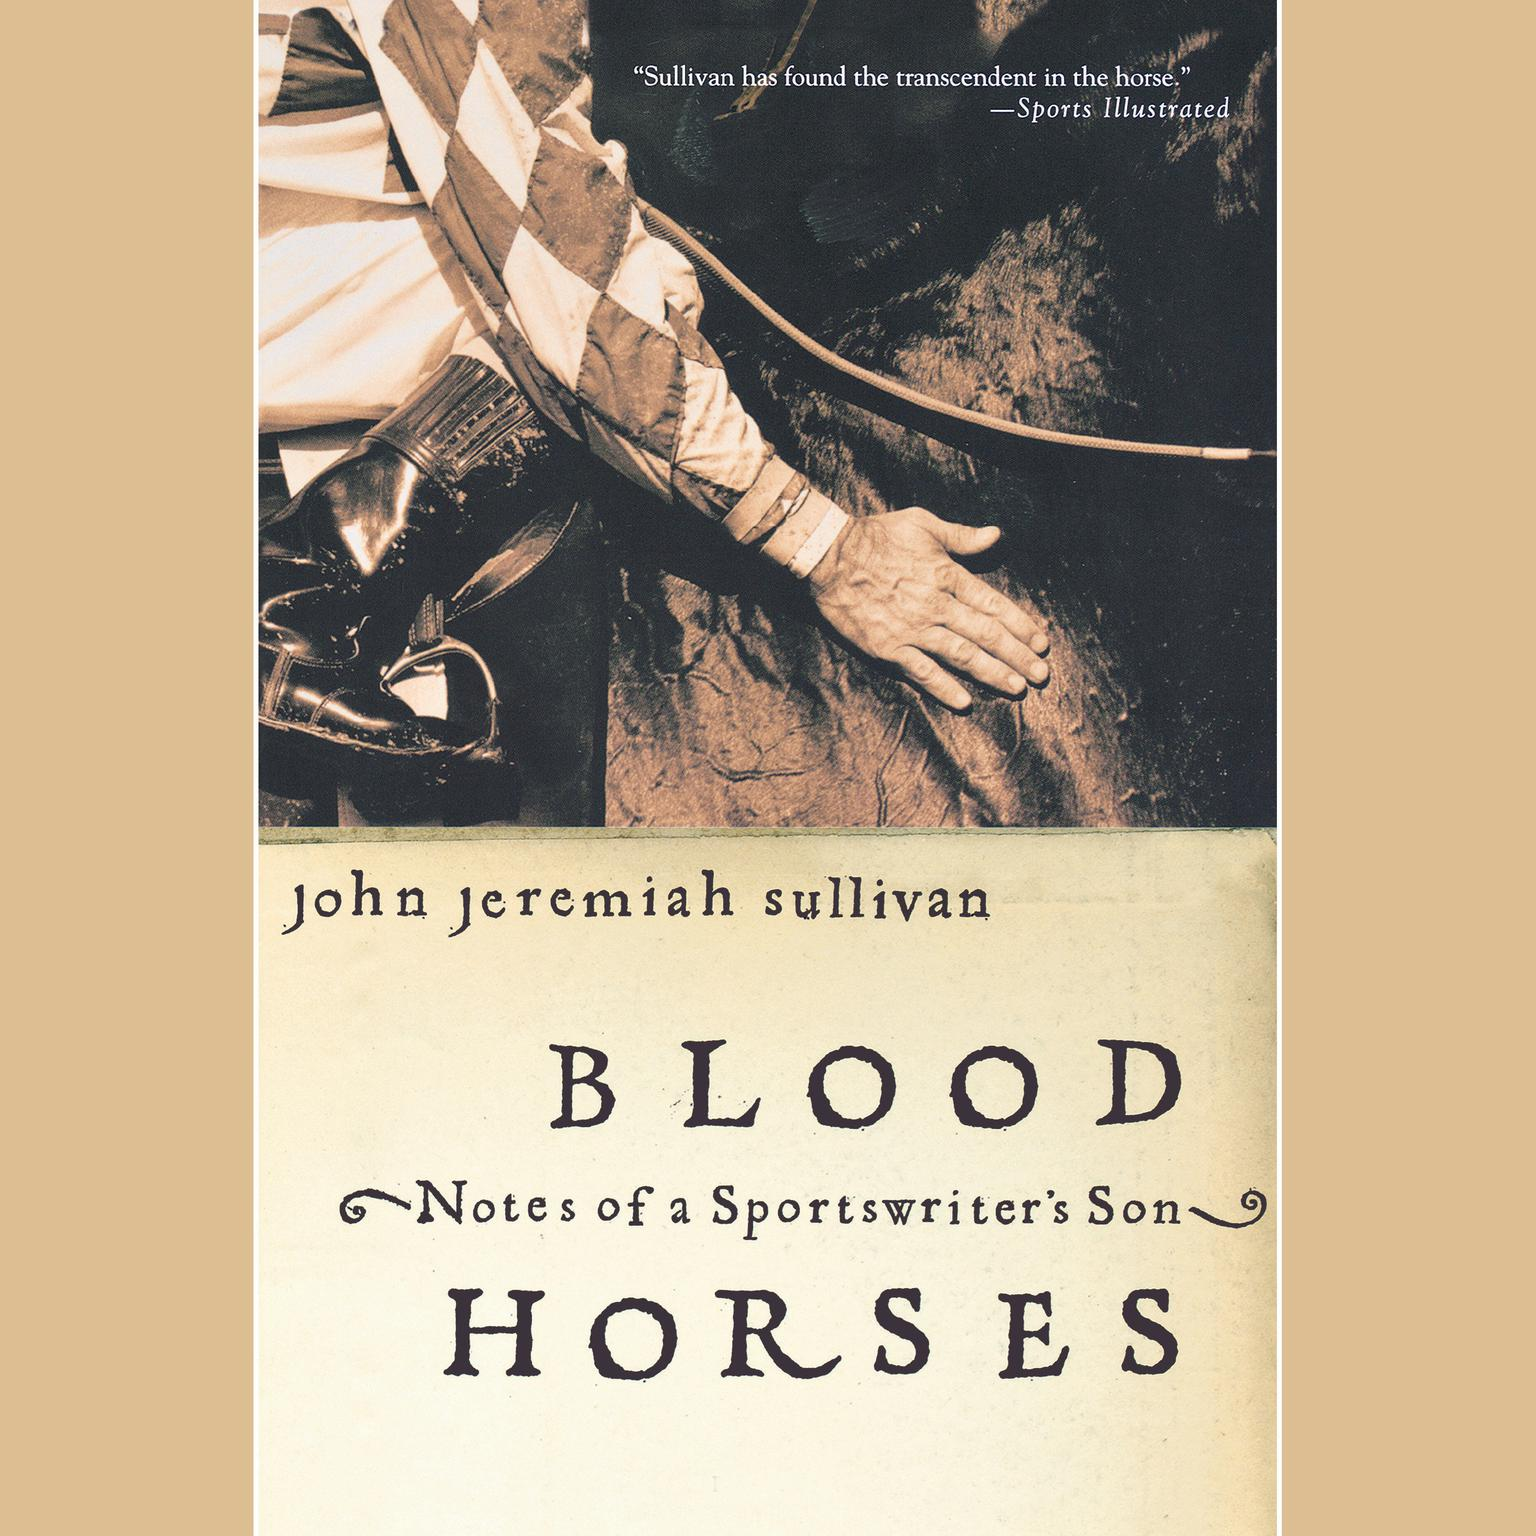 Blood Horses: Notes of a Sportswriters Son Audiobook, by John Jeremiah Sullivan